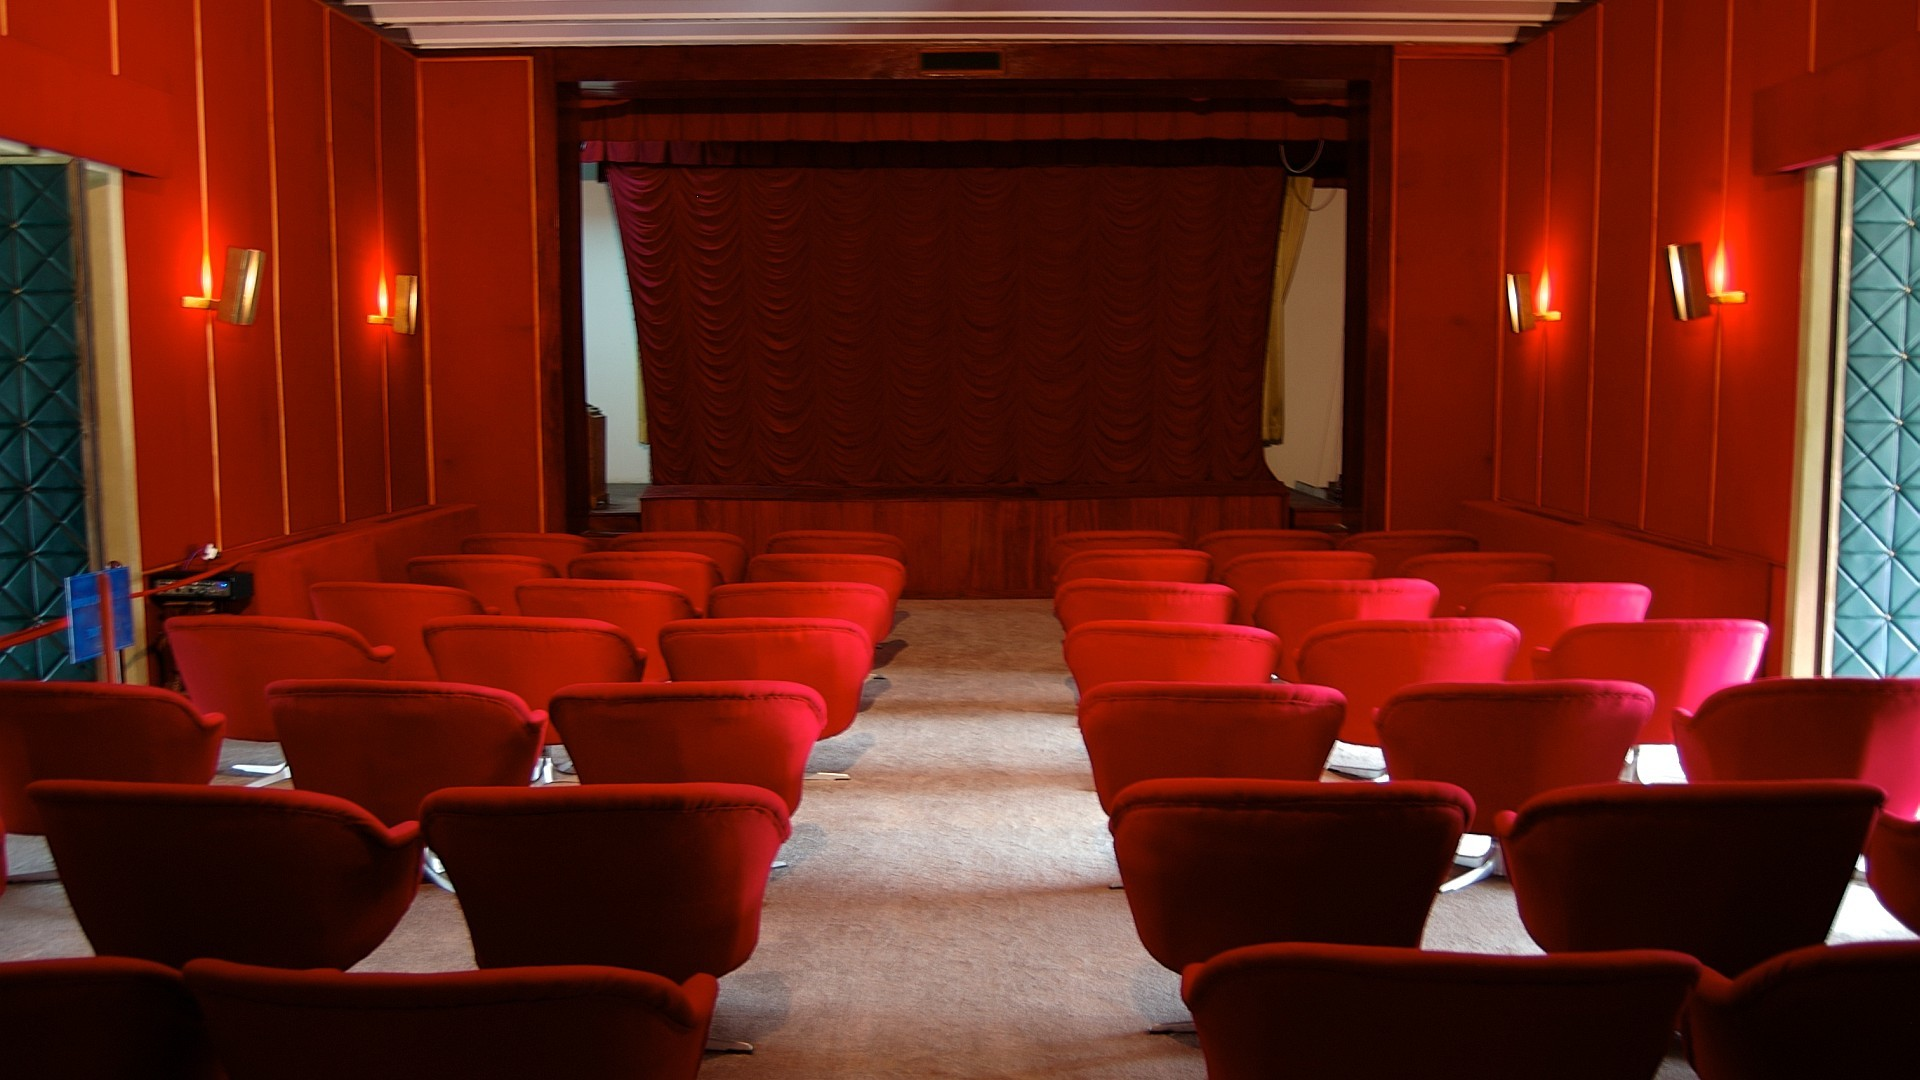 Res: 1920x1080, home theater wallpaper border Movie Theater Wallpaper - WallpaperSafari